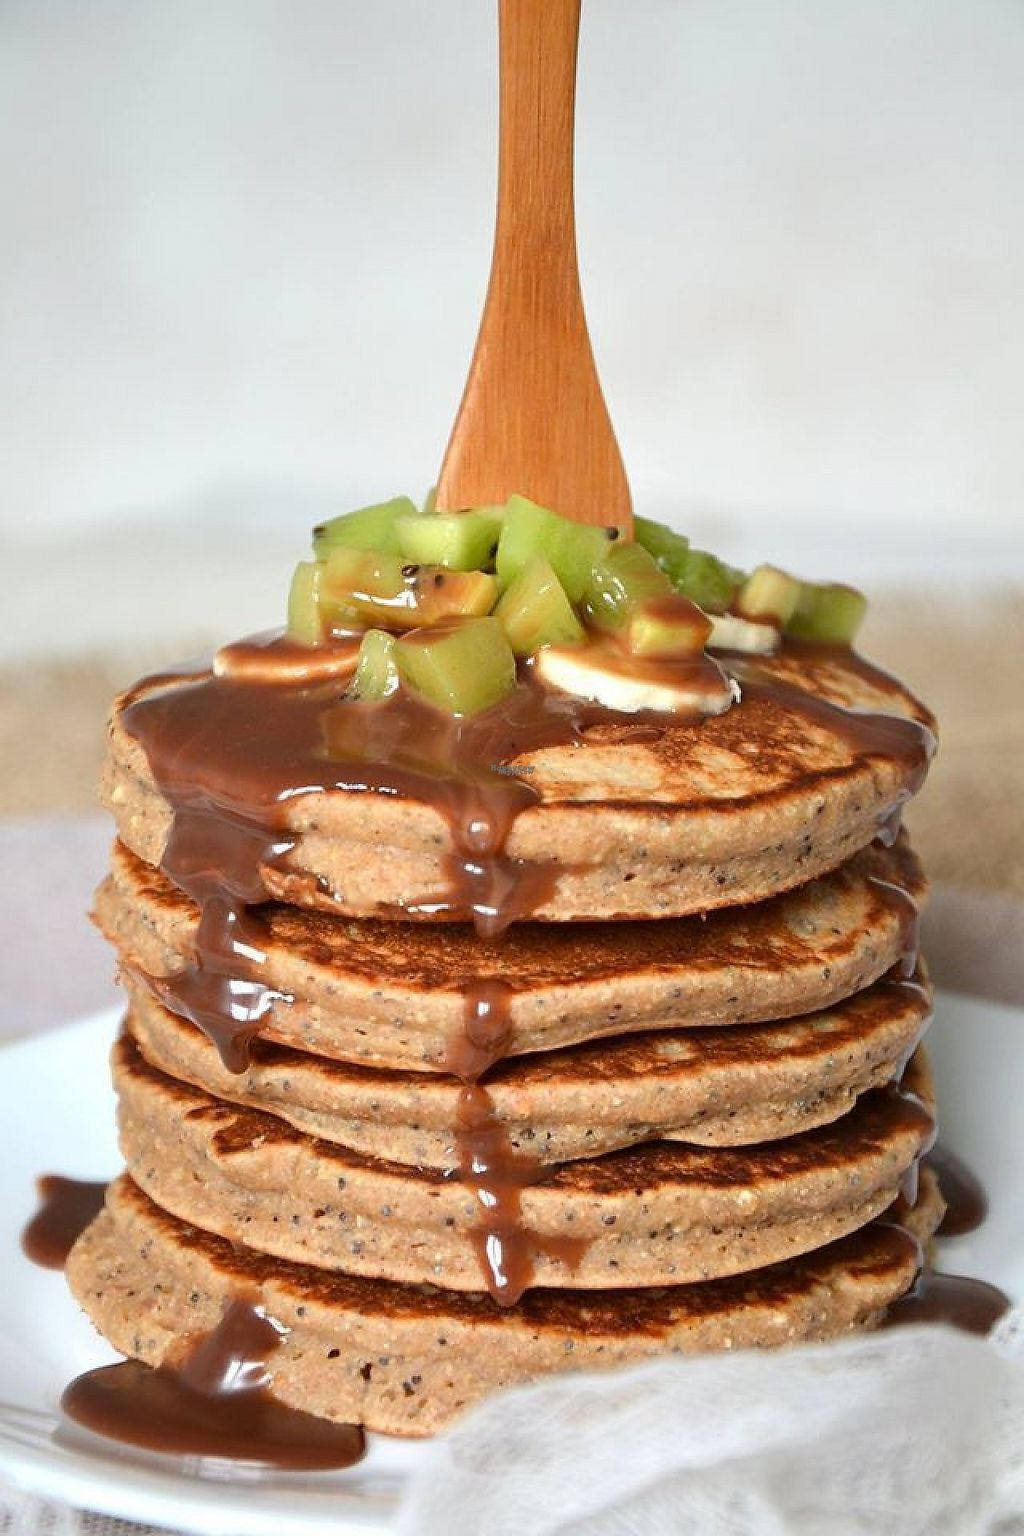 """Photo of La Vie Claire  by <a href=""""/members/profile/community"""">community</a> <br/>vegan pancakes  <br/> February 4, 2017  - <a href='/contact/abuse/image/72043/221890'>Report</a>"""